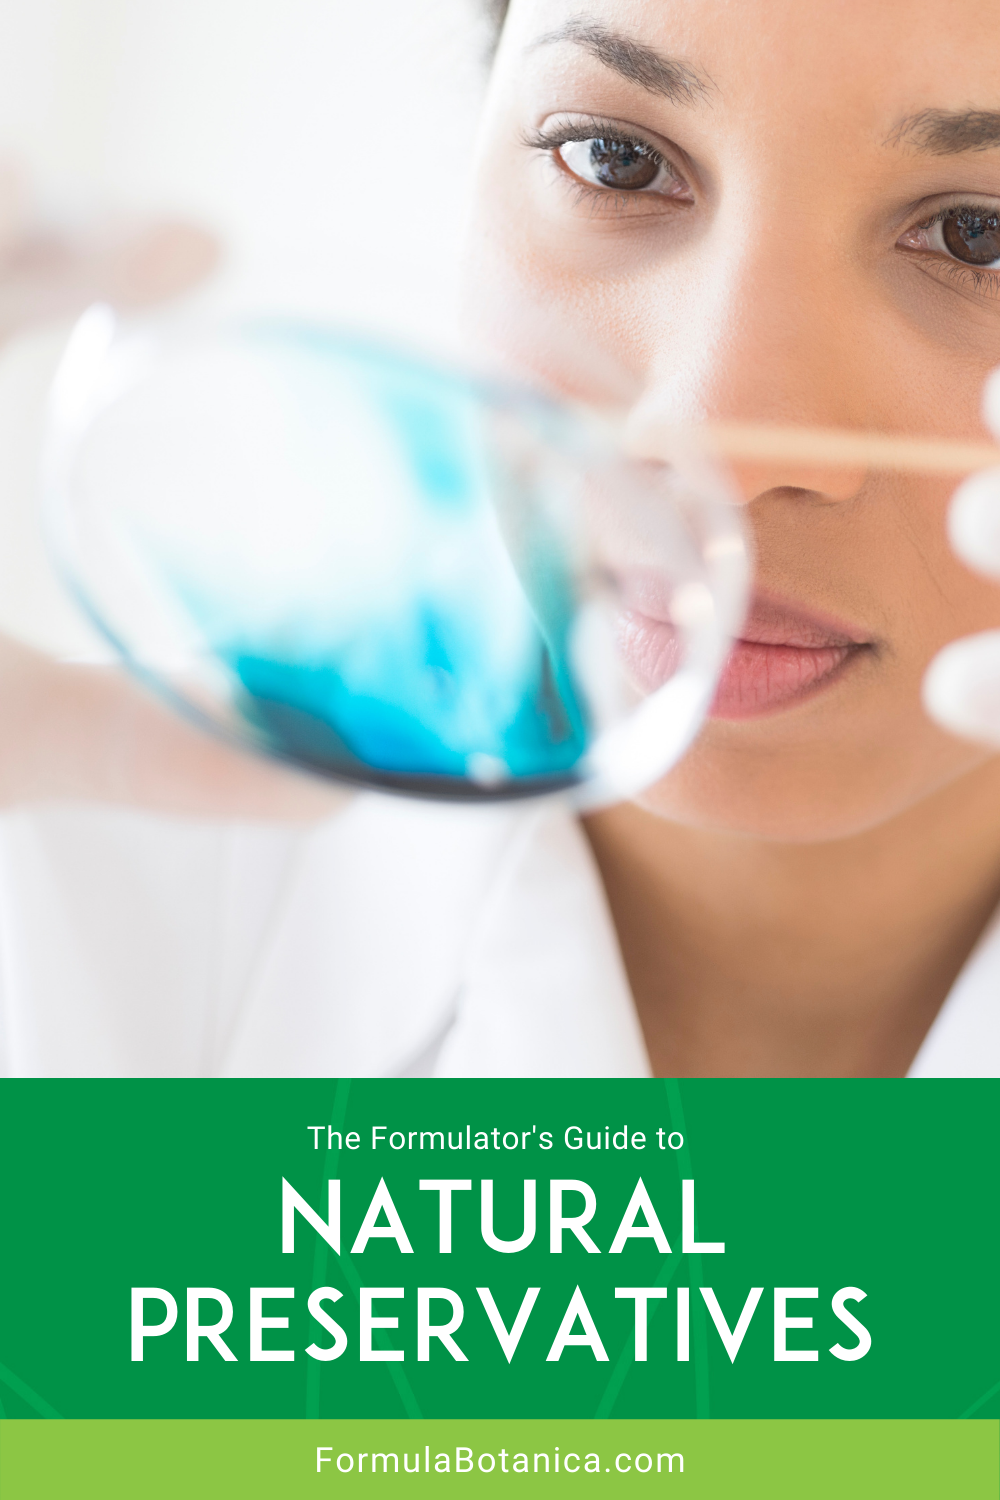 2021-03 Natural Preservatives in Cosmetics